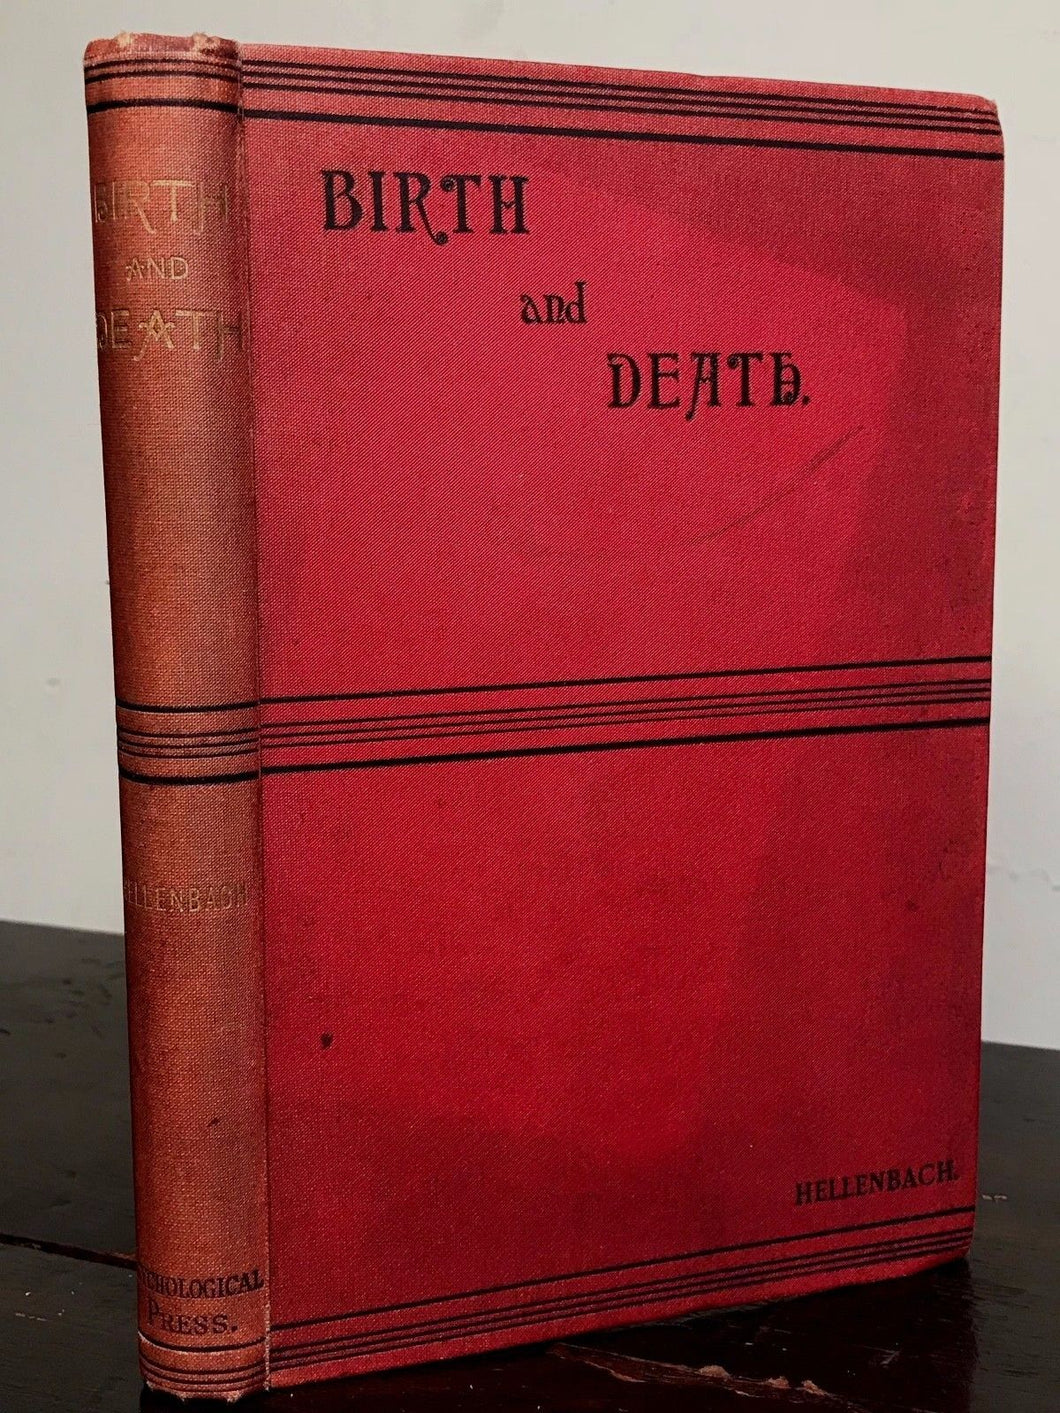 BIRTH AND DEATH - BARON HELLENBACH, 1st 1886 - CLAIRVOYANCE, PSYCHICS, AFTERLIFE